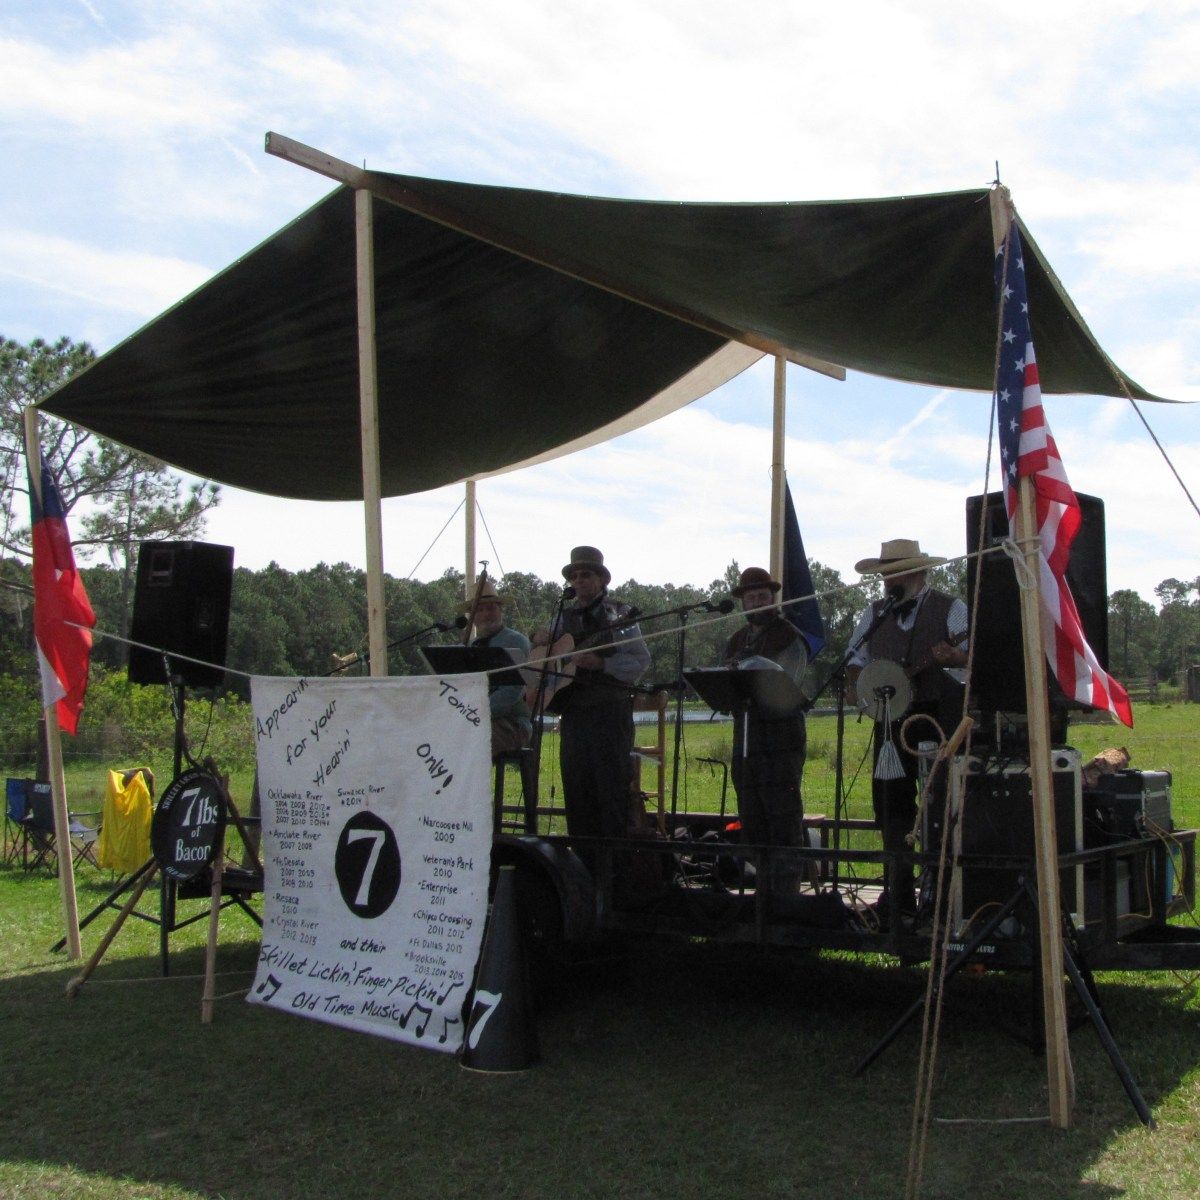 The band that played was called 7 Lbs of Bacon Mess Band. Their specialty is Civil War tunes so they played quite a few Stephen Foster songs and well-known songs of the 1860s. They played for a dance in the evening too.